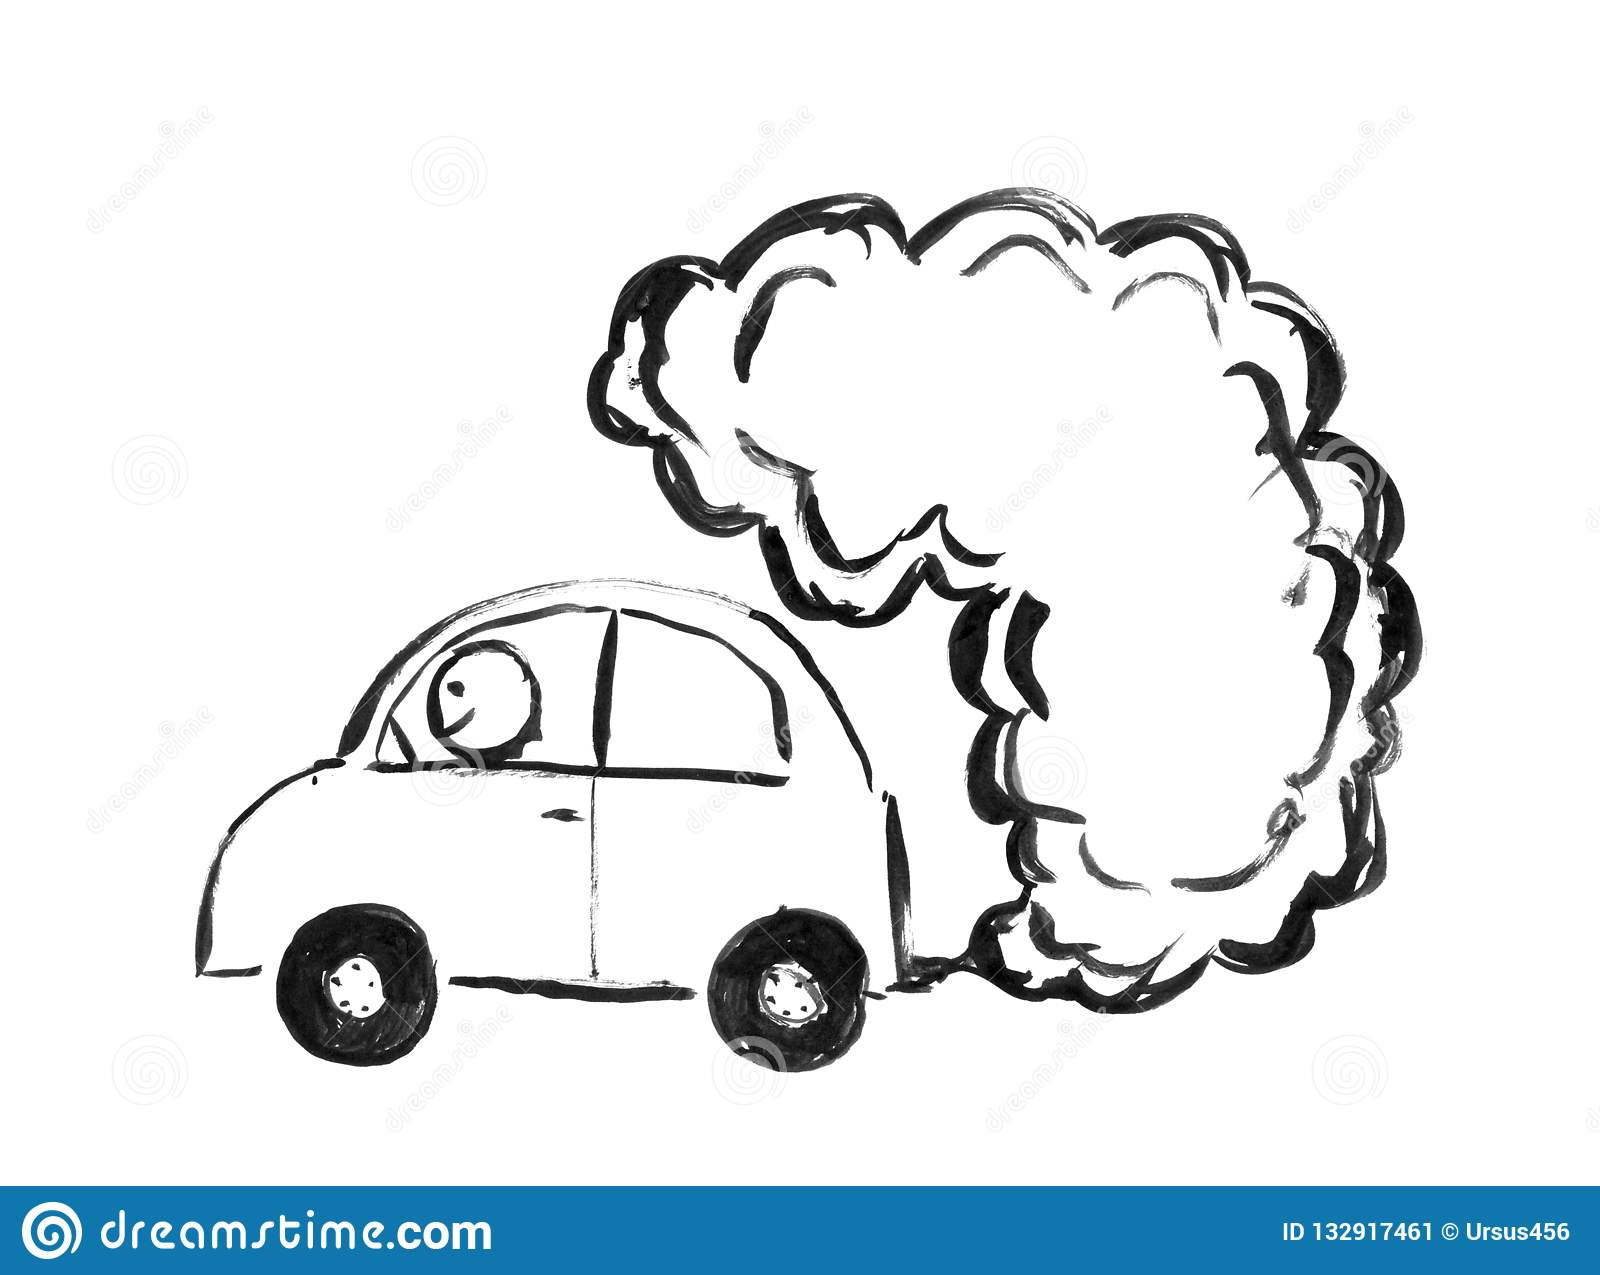 Black brush and ink artistic rough hand drawing of smoke coming from car exhaust into air environmental concept of pollution